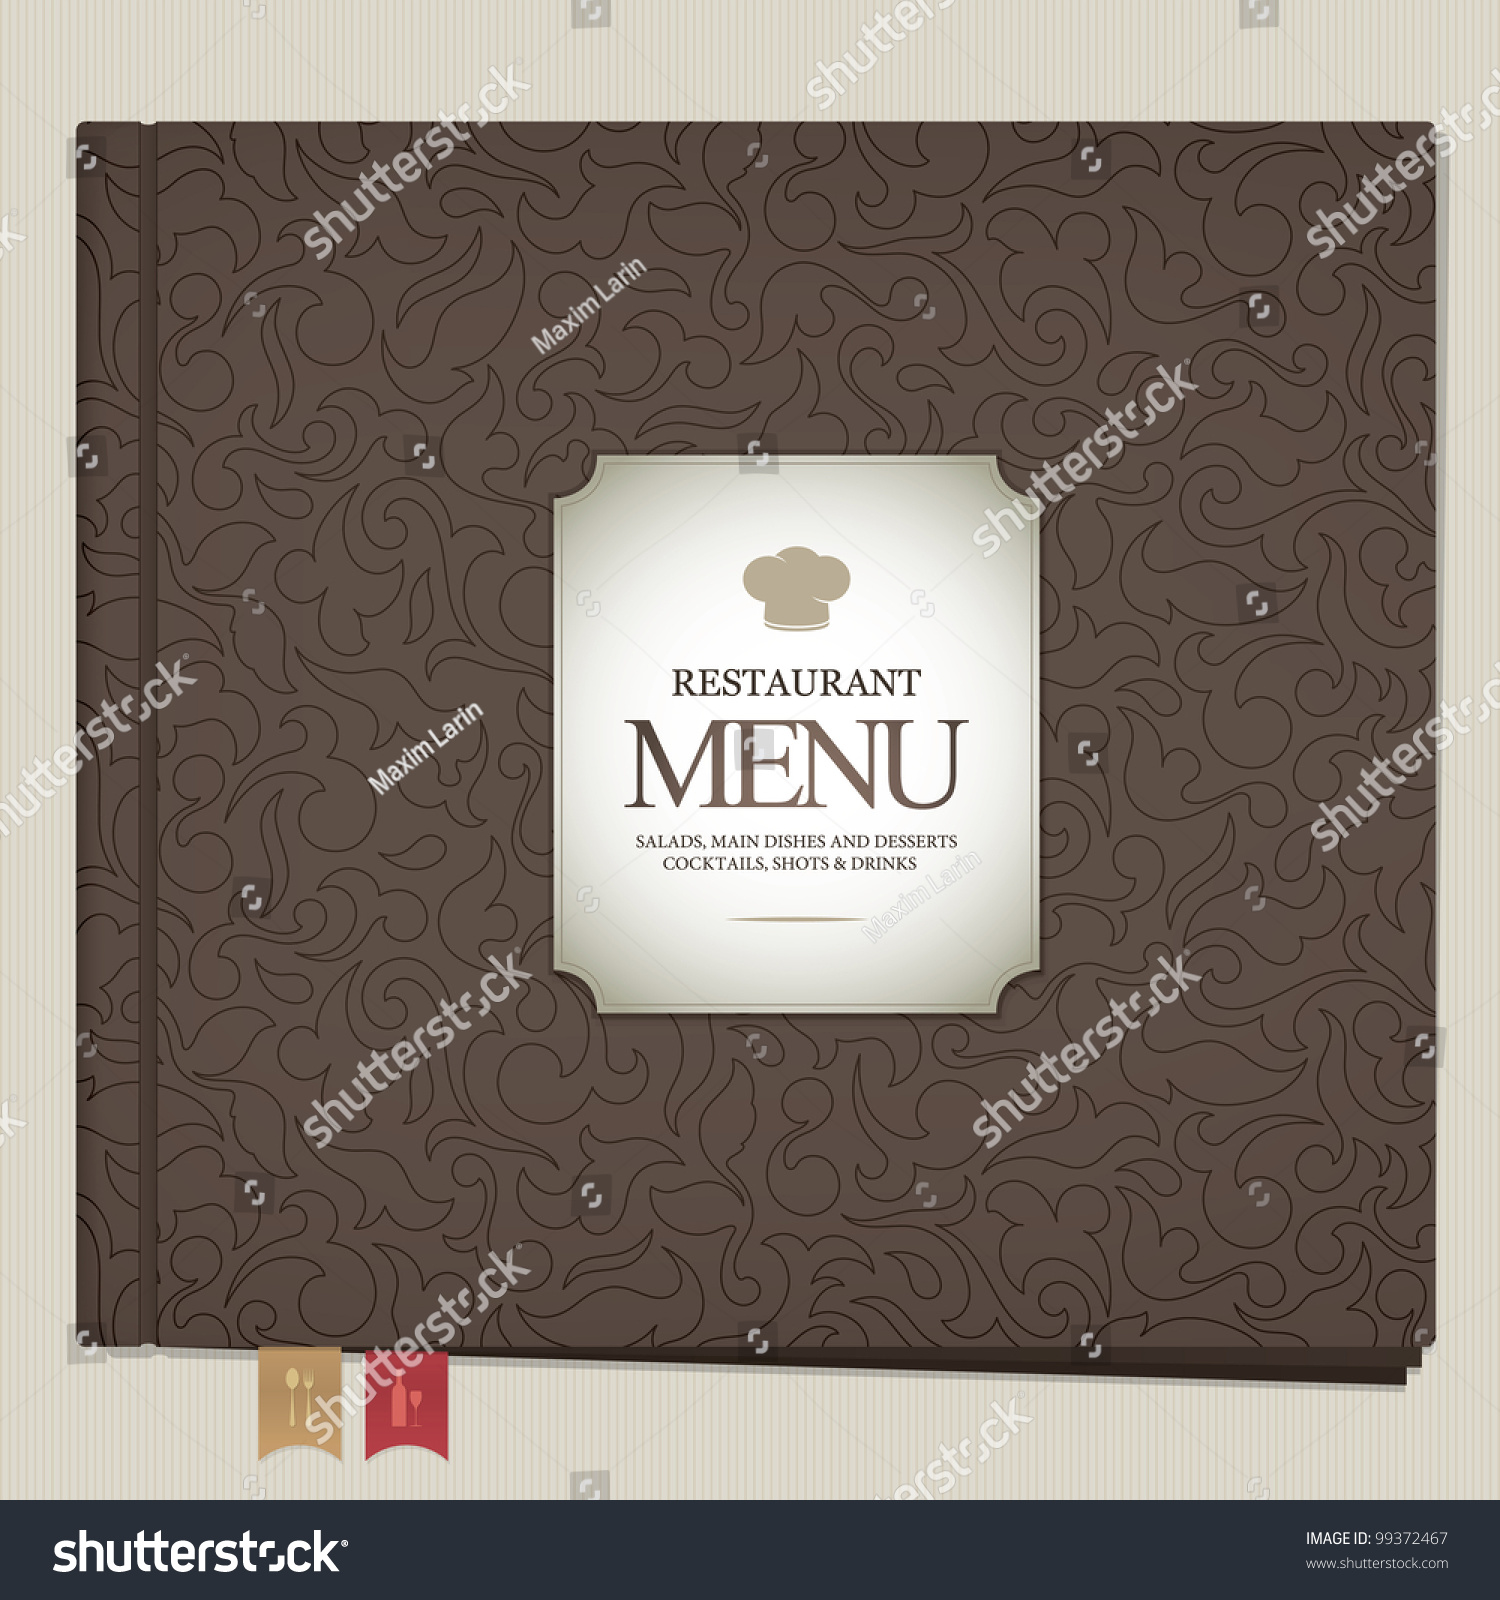 Restaurant menu design book with bookmarks stock vector